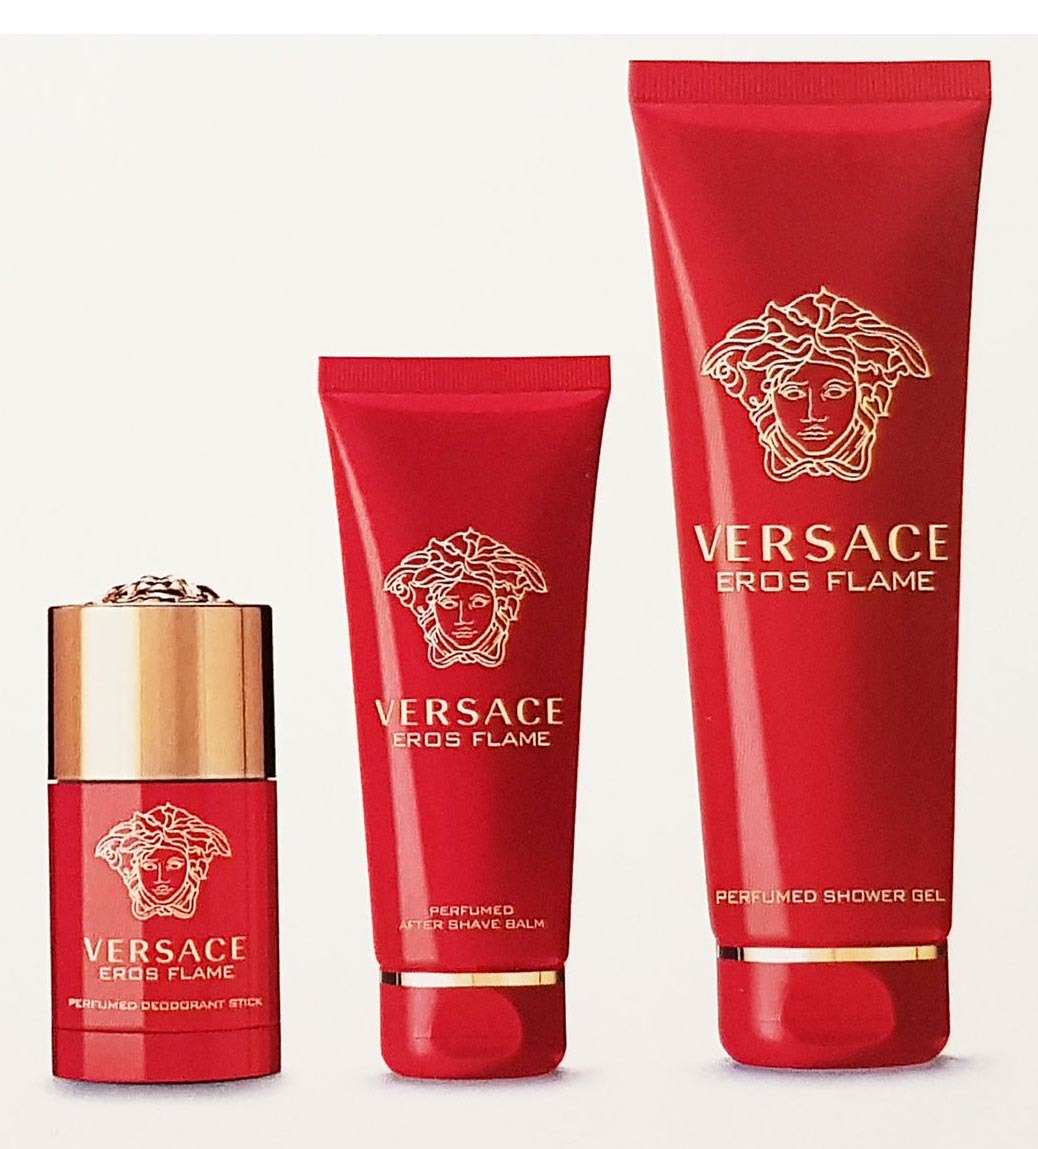 Versace Eros Flame Reviews And Rating